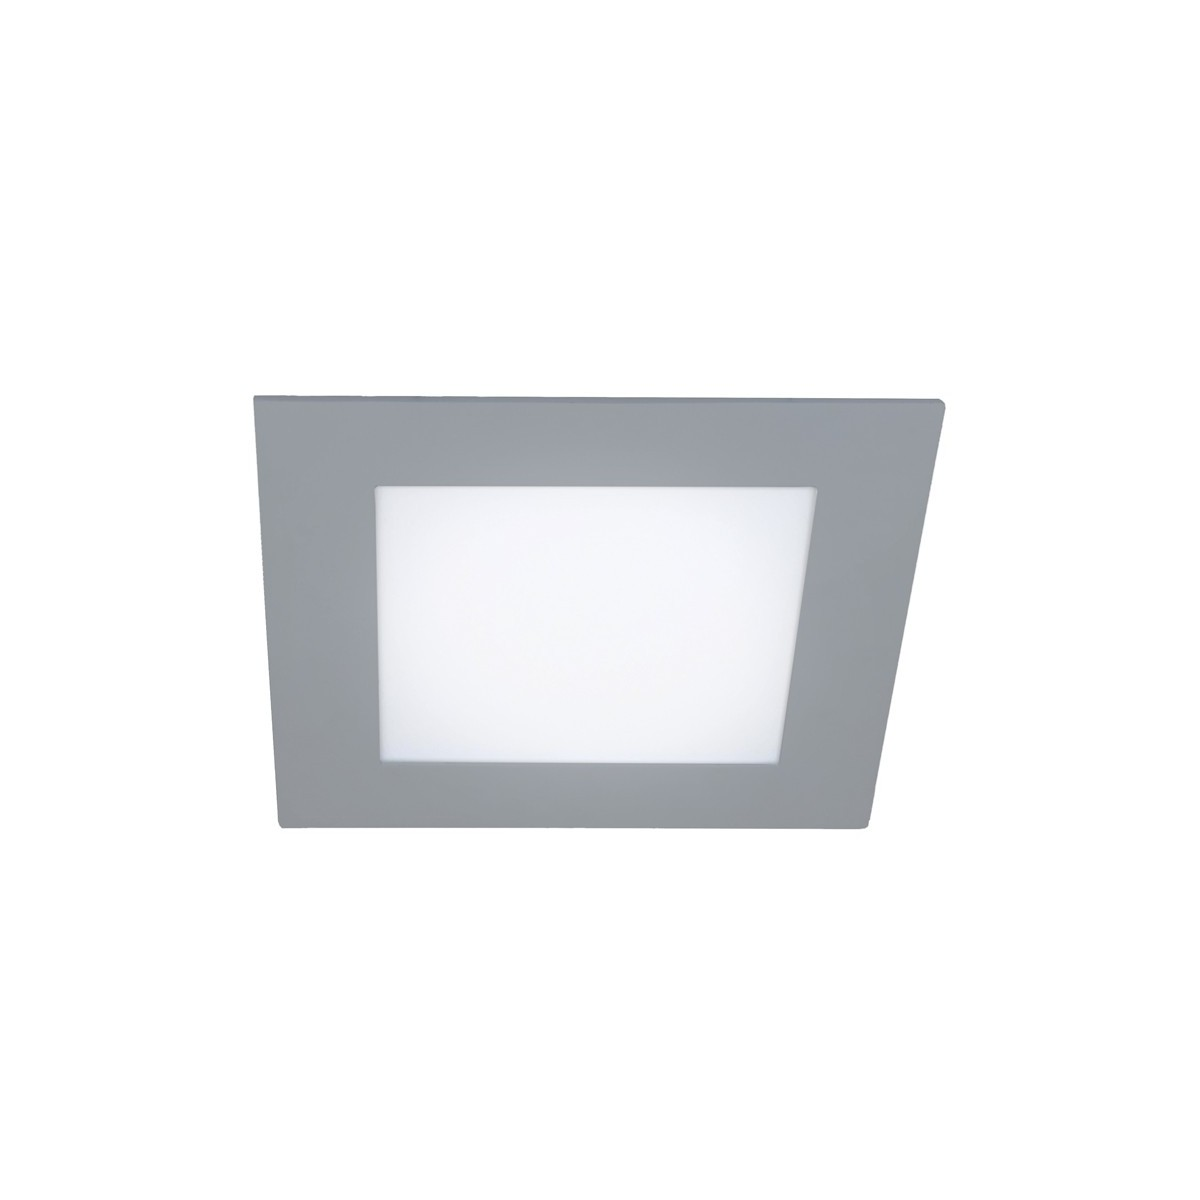 Know LED Downlight 6W 4000K Square Grey